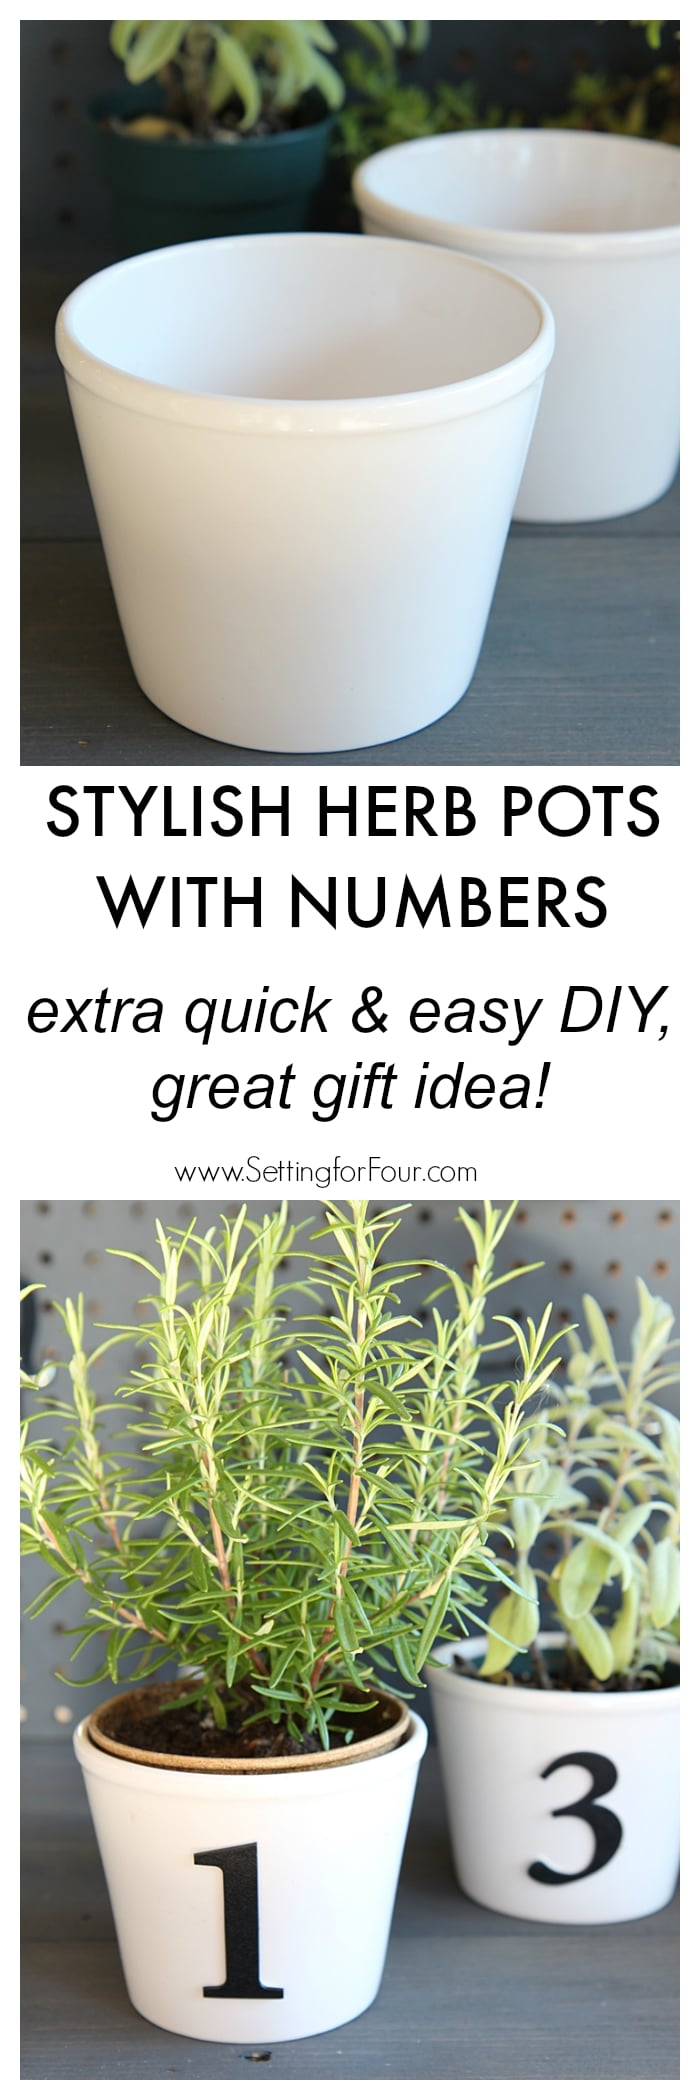 Stylish Herb Pots with Numbers - extra quick and easy DIY decor idea. Great gift idea too! www.settingforfour.com